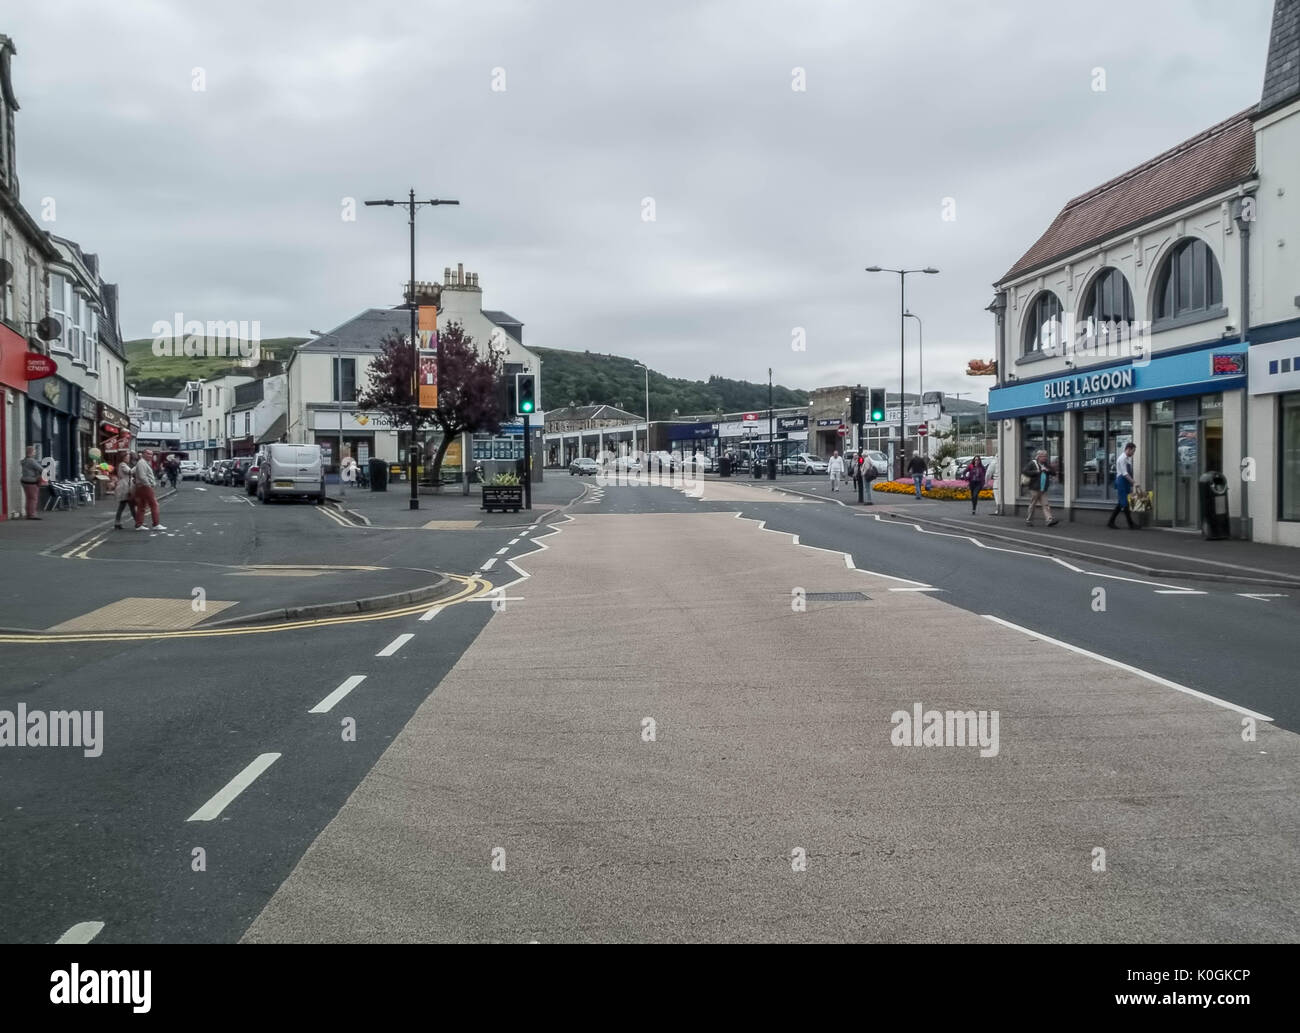 Largs,North Ayrshire Scotland-August 21,2017: Main Stret Largs during the summer when the town has been very quiet. - Stock Image